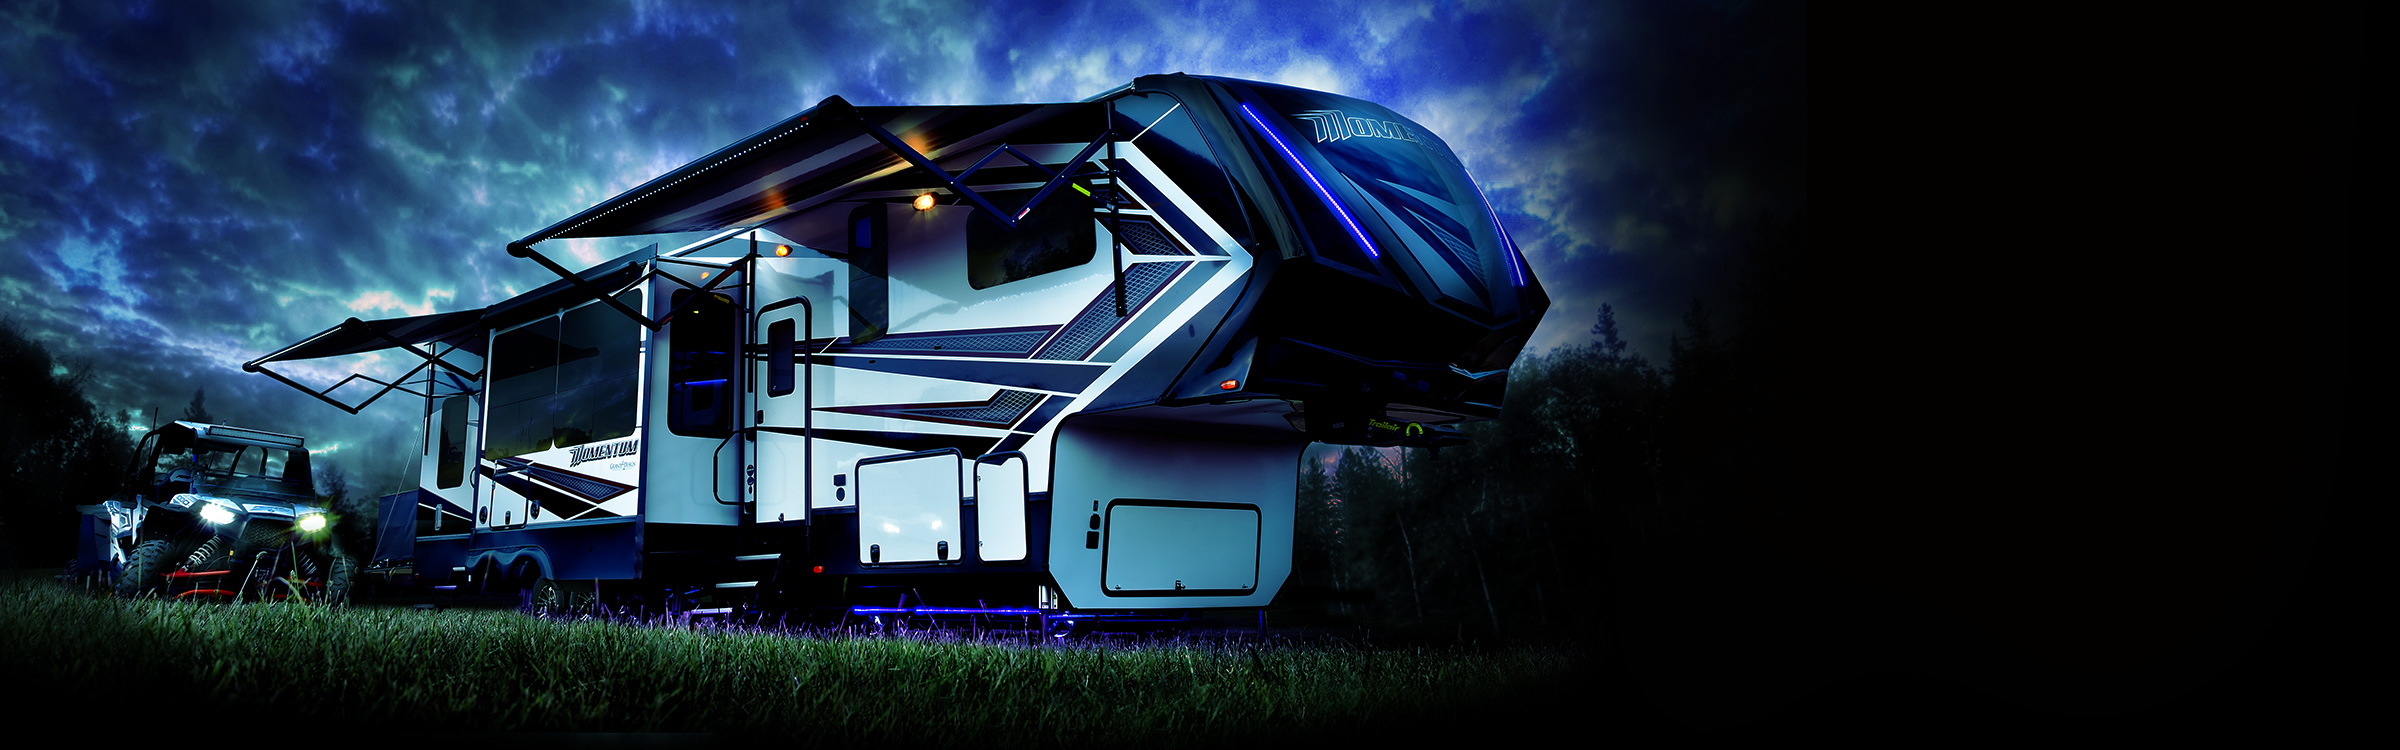 Momentum Fifth Wheel Toy Hauler | Grand Design RV